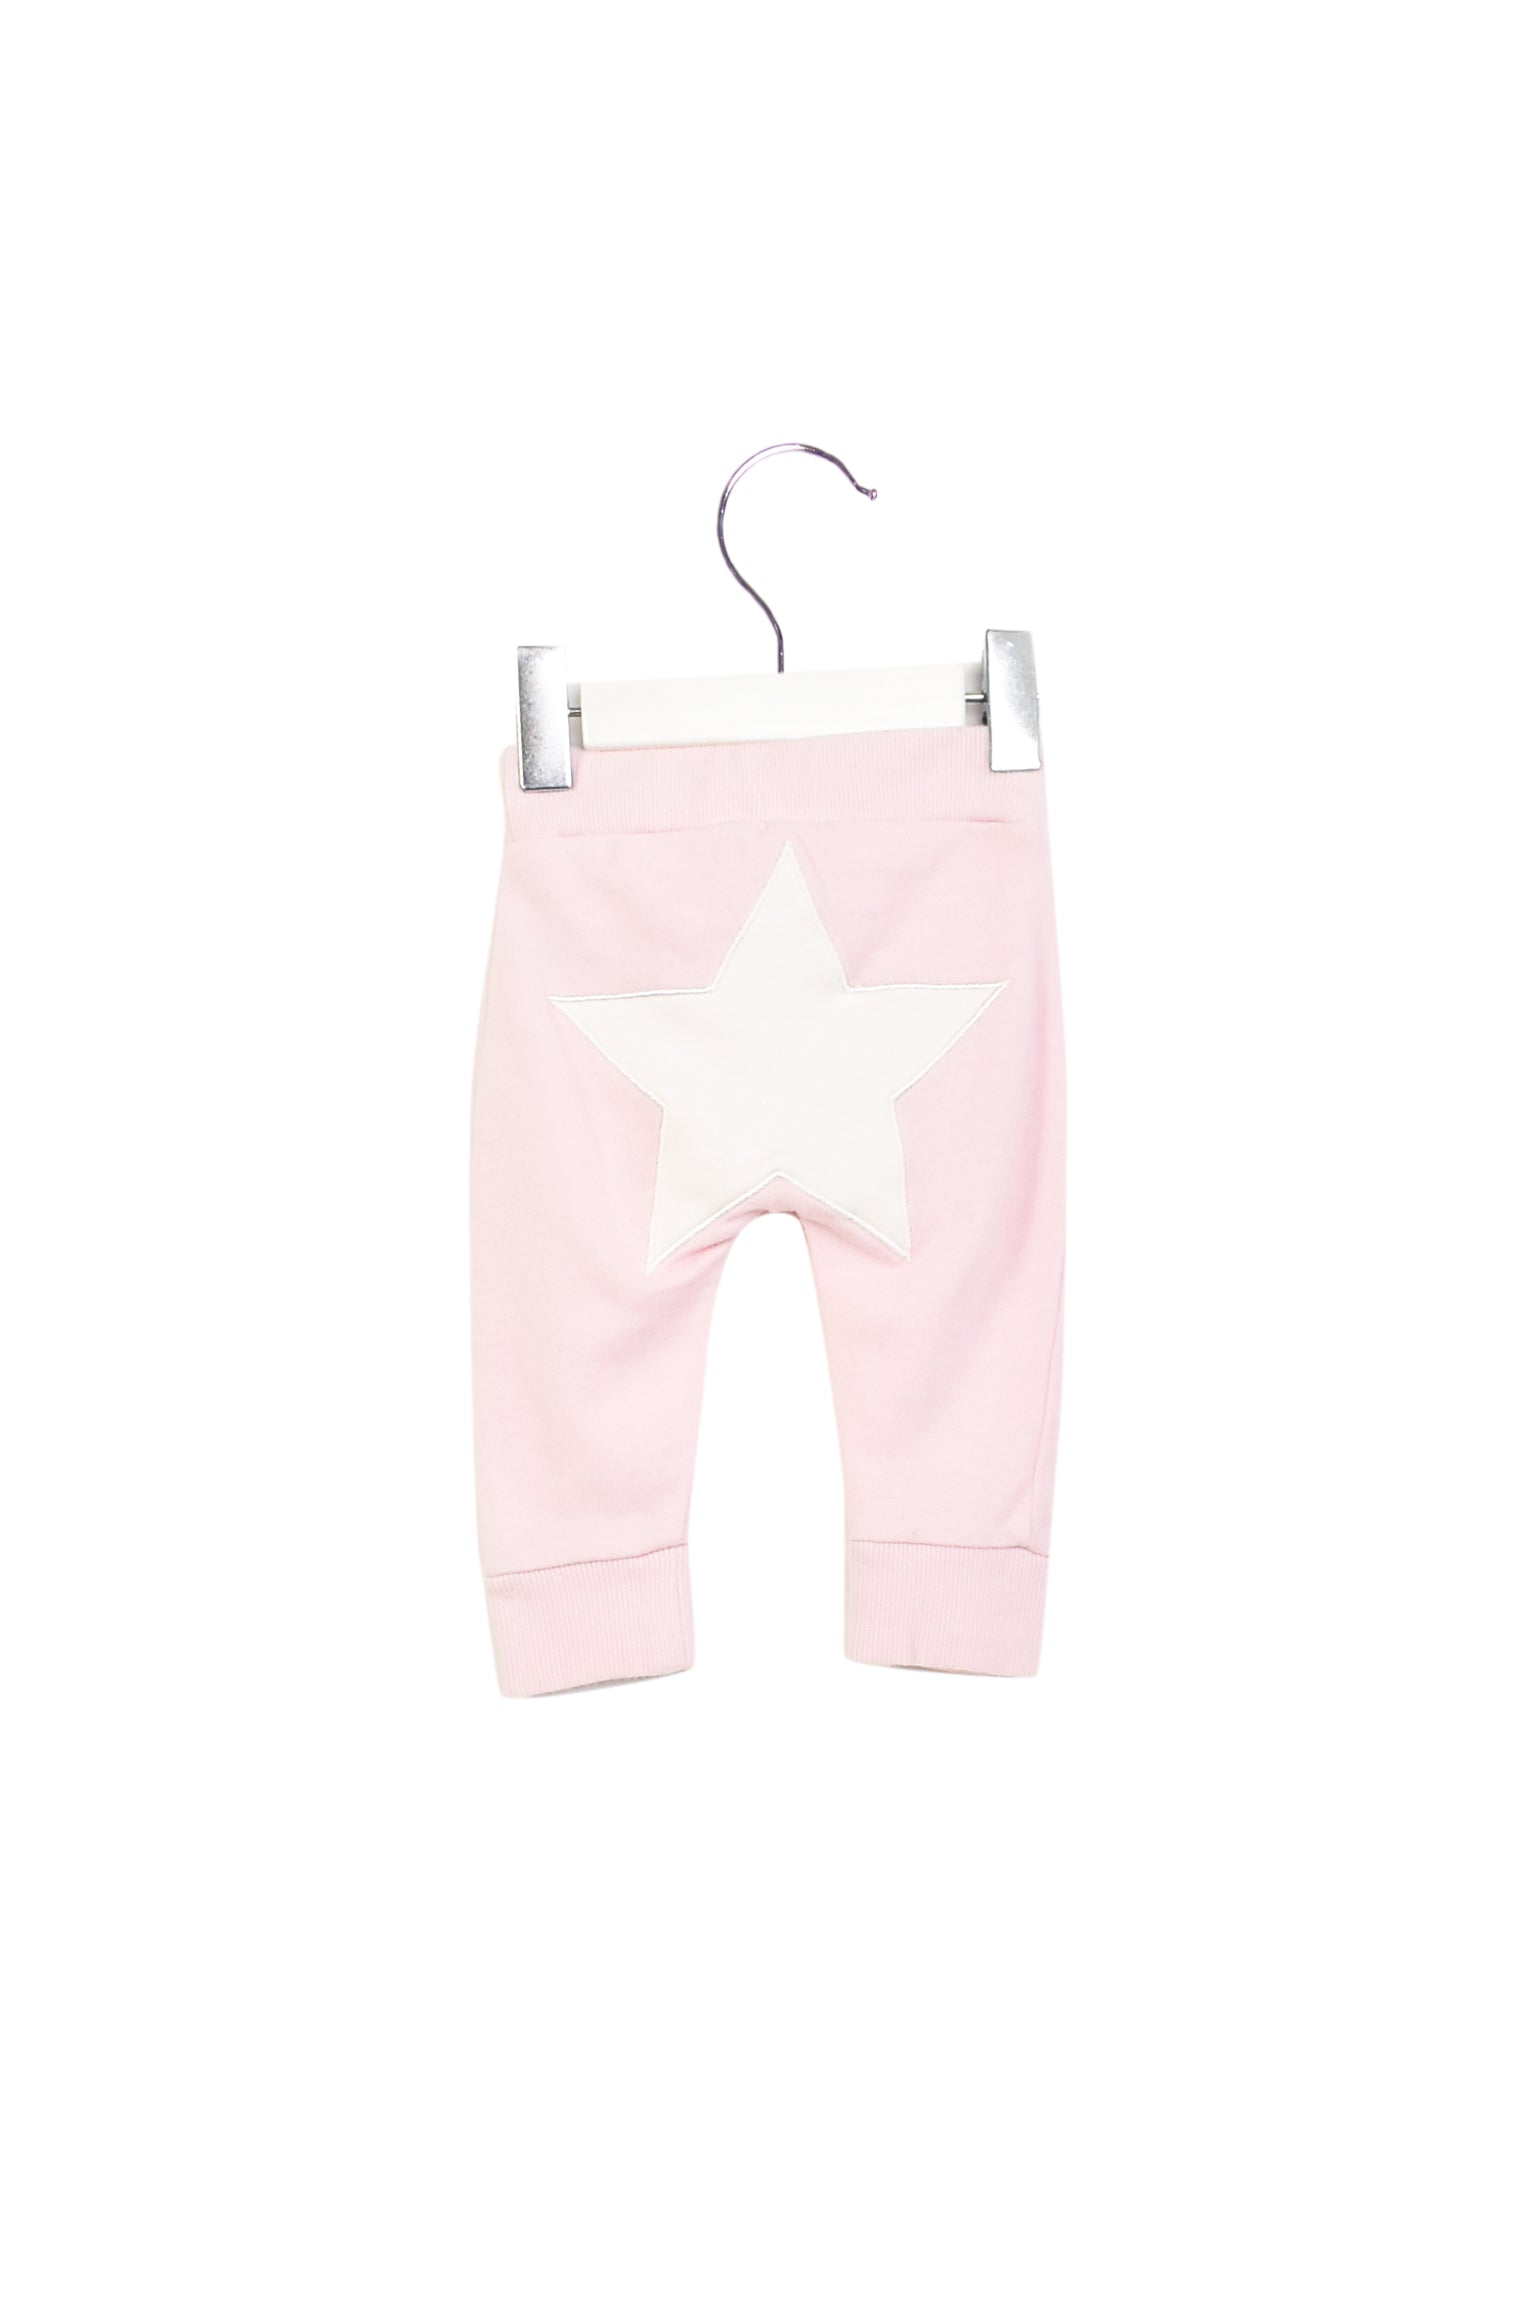 10013158 Seed Baby ~ Sweatpants 0-3M at Retykle